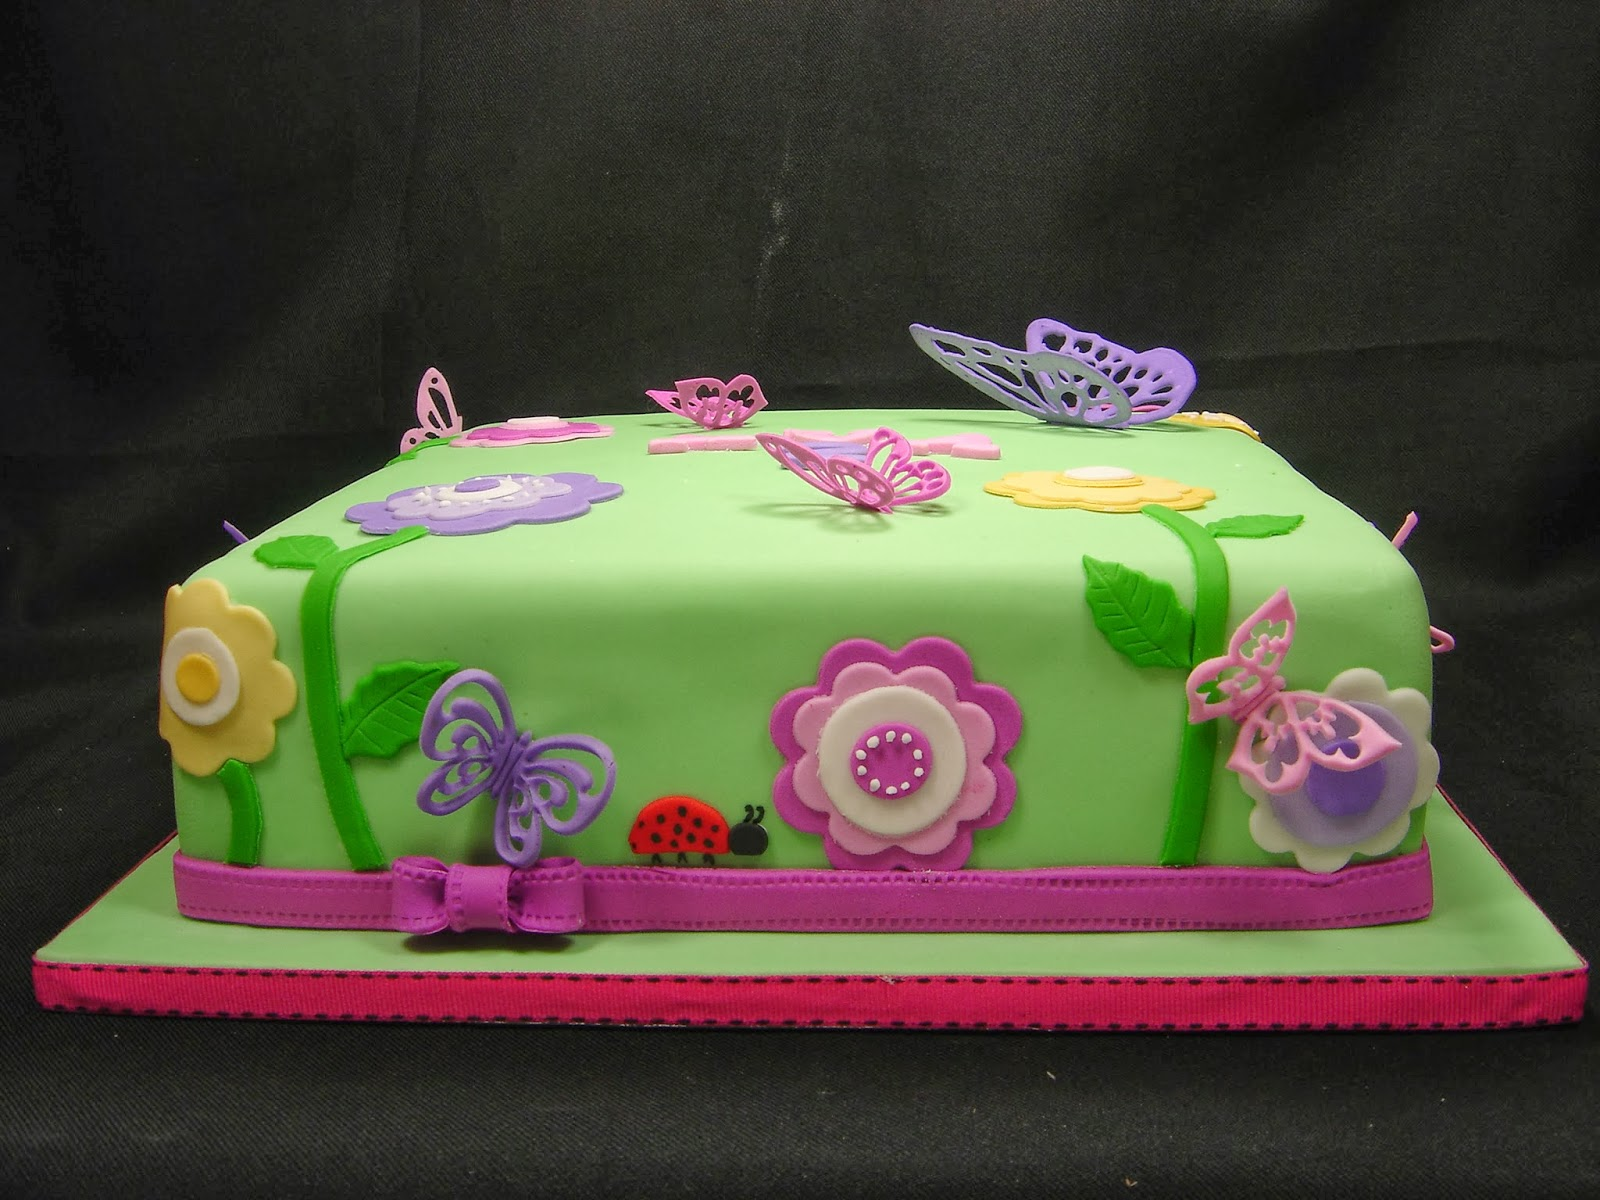 Cake till u drop Flower and Butterfly cake